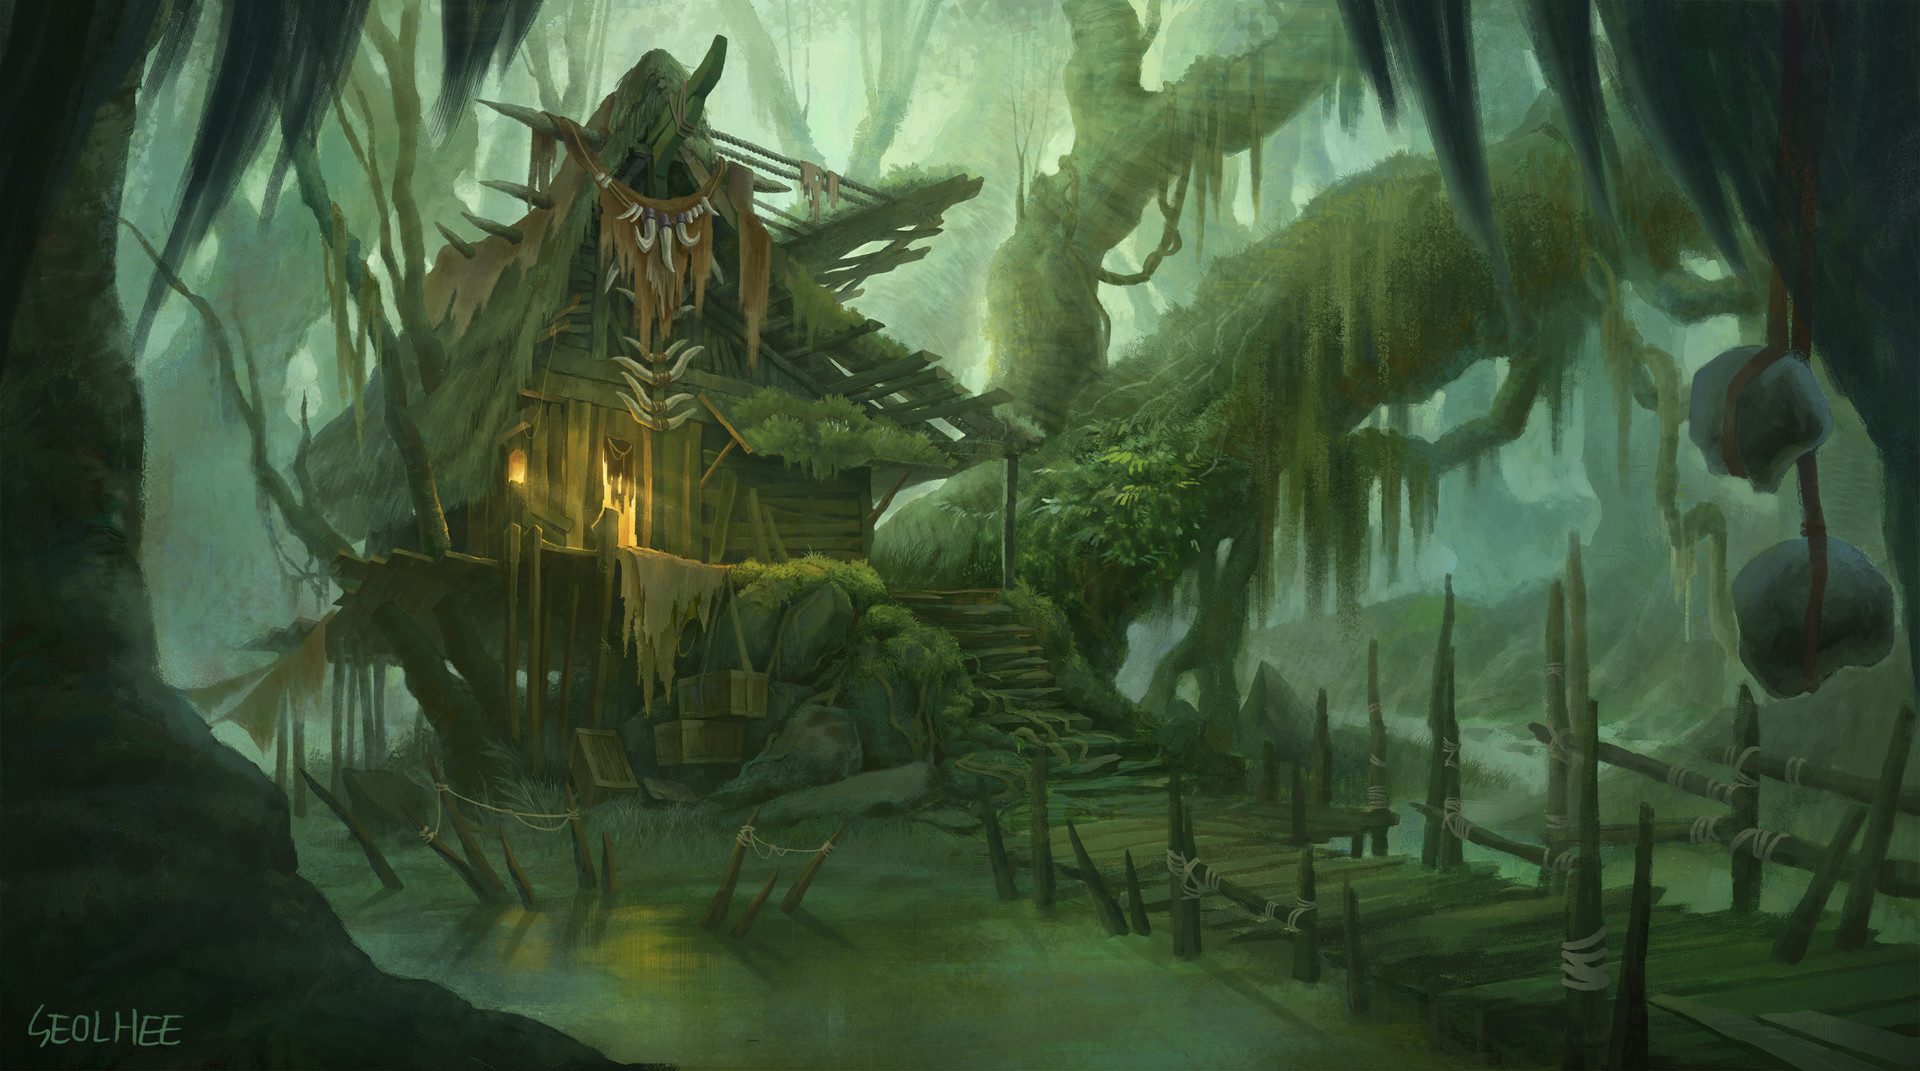 Cute Animated Wallpapers For Desktop Artstation Witch S House In A Swamp Seolhee Park